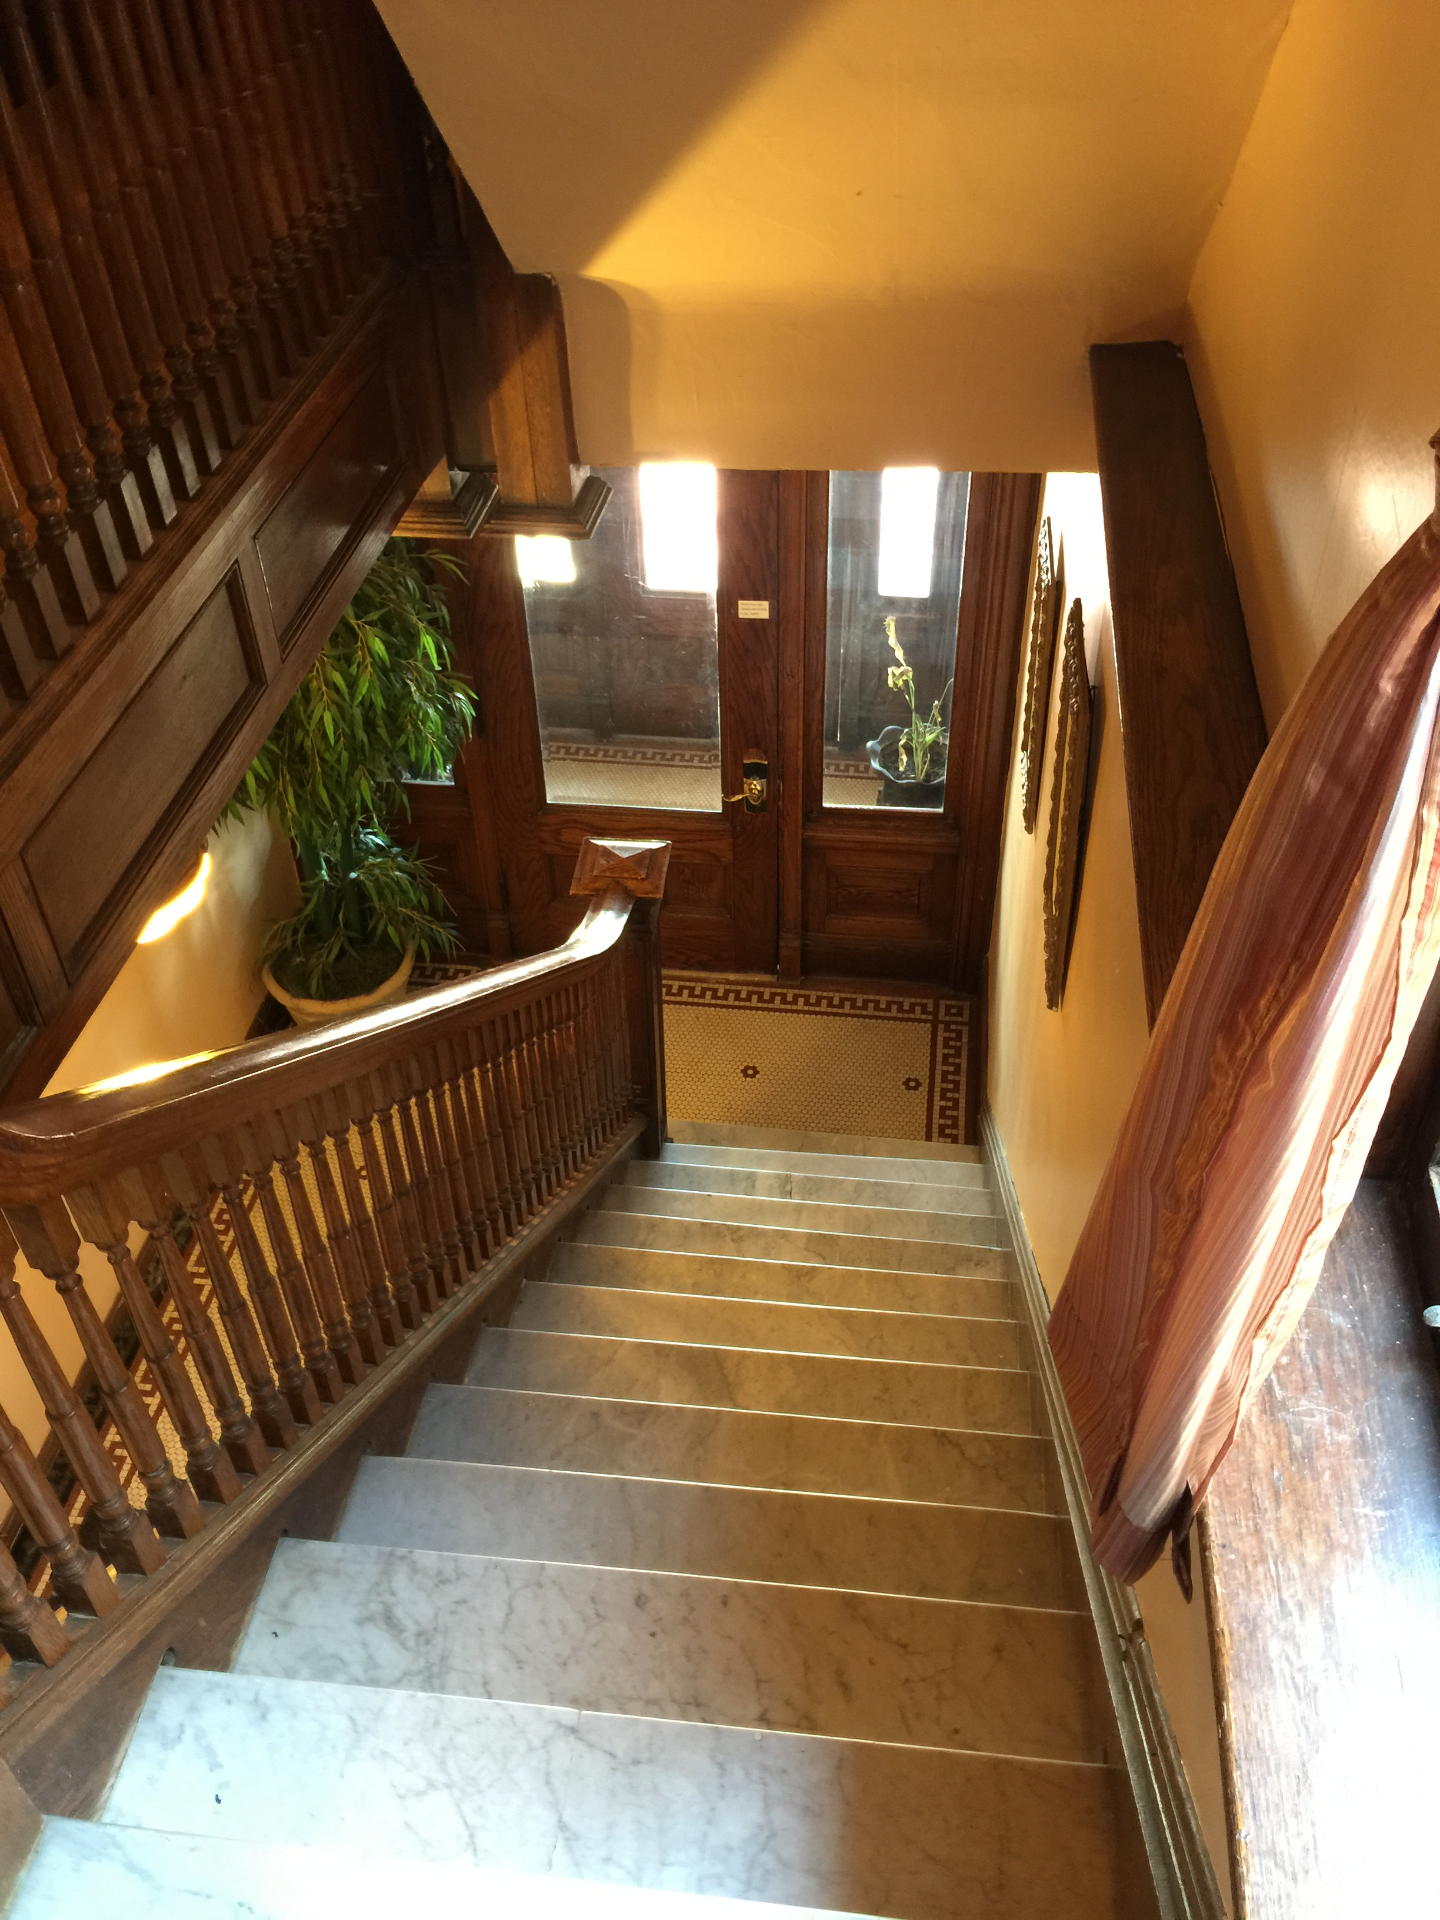 Staircase to Unit #2